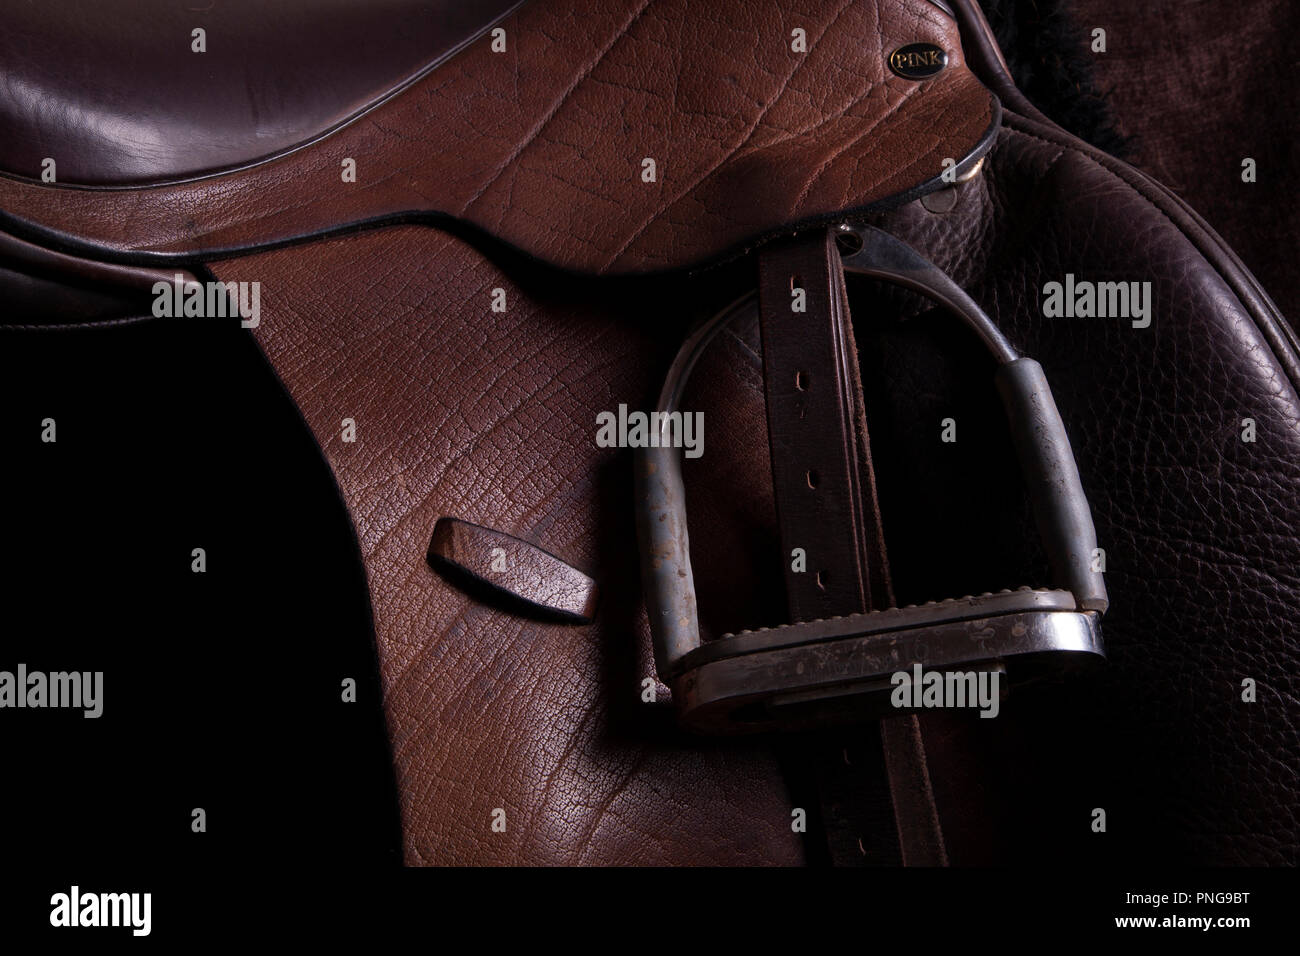 Buffalo hide leather English saddle low light - Stock Image